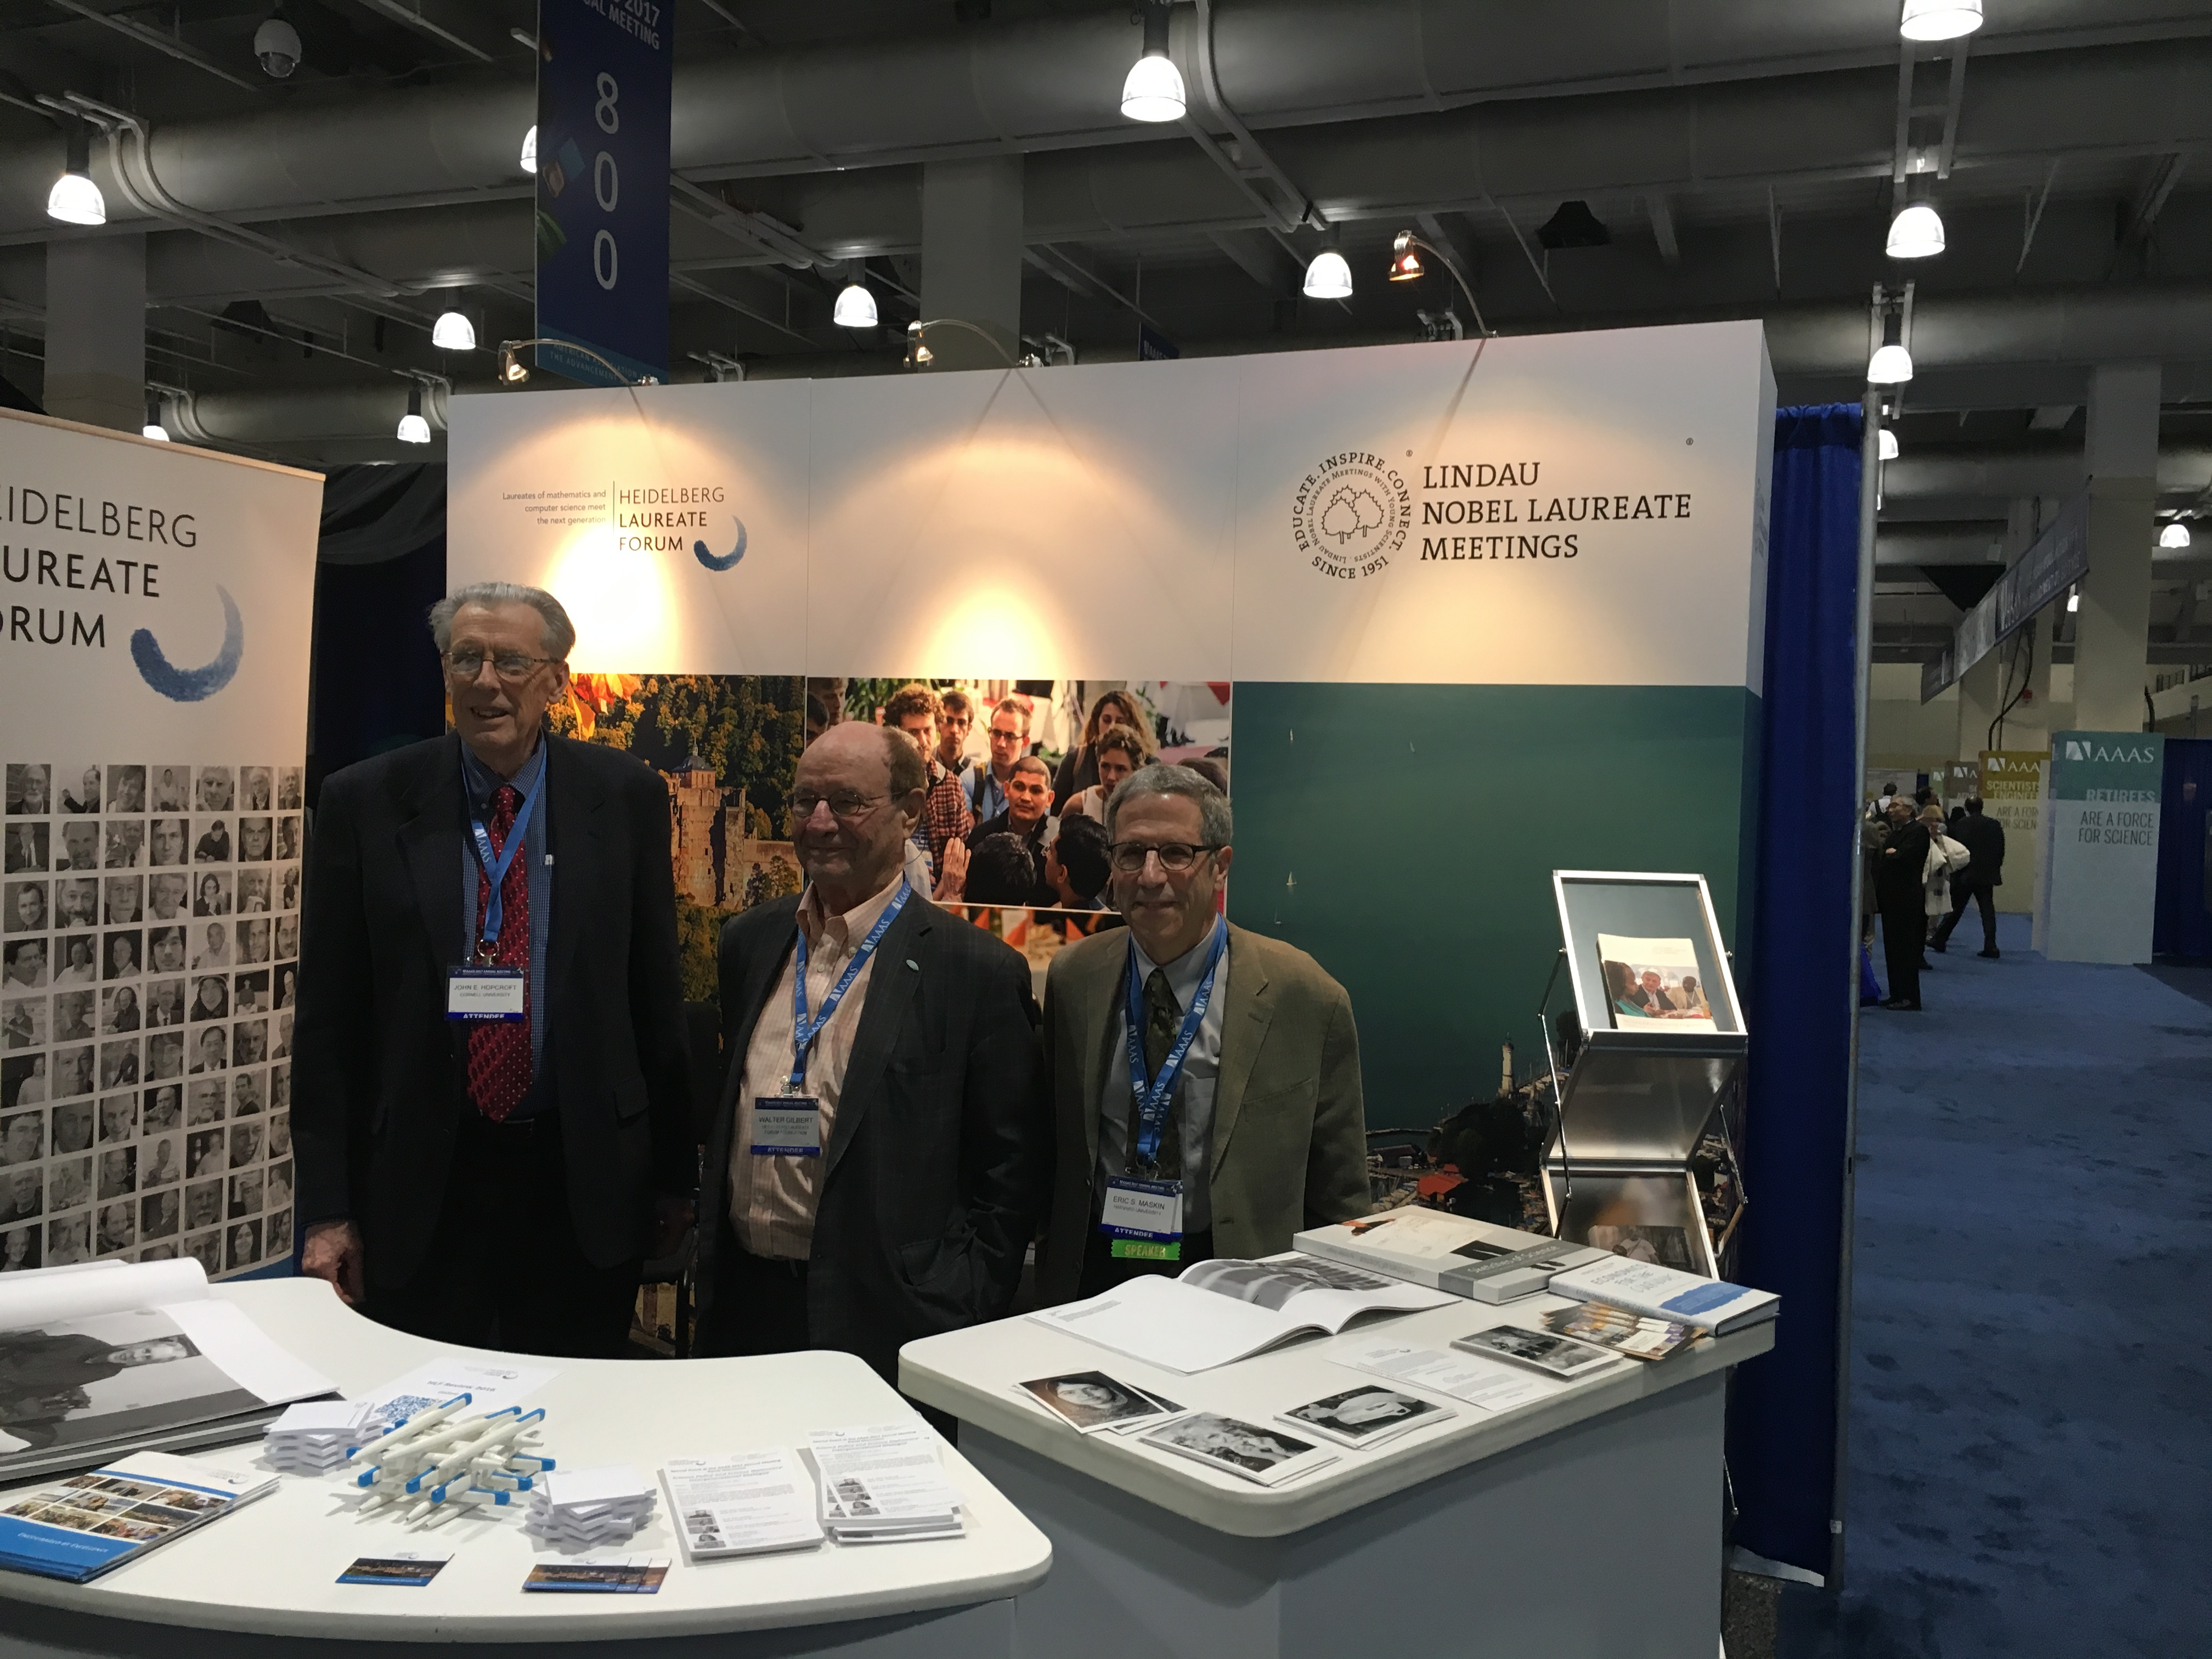 Turing Ward winner John Hopcroft and Nobel Laureates Wally Gilbert and Eric Maskin visiting the booth of the Lindau Meetings and the HLF at the AAAS Meeting. Photo: Wolfgang Huang